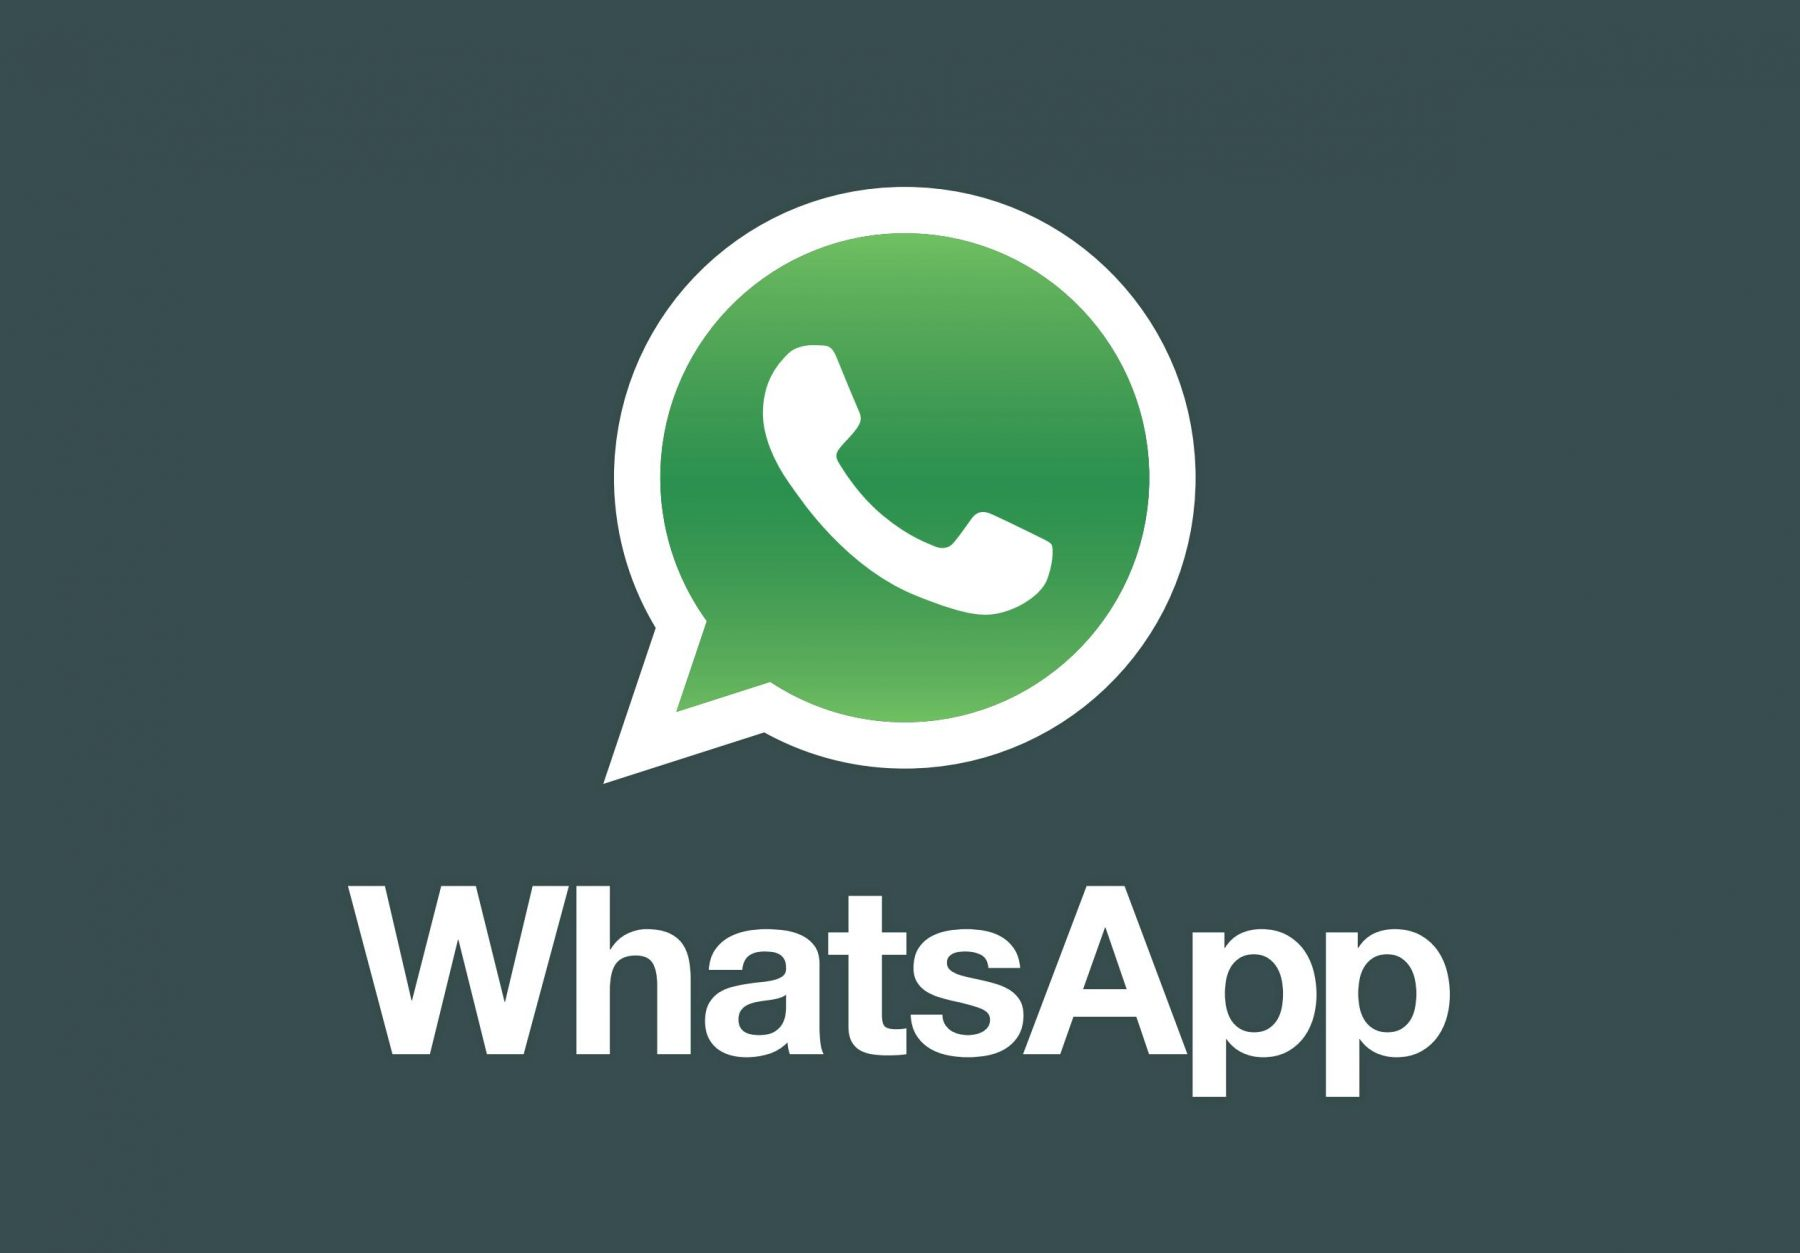 WhatsApp Messenger 2.16.238 Beta launched